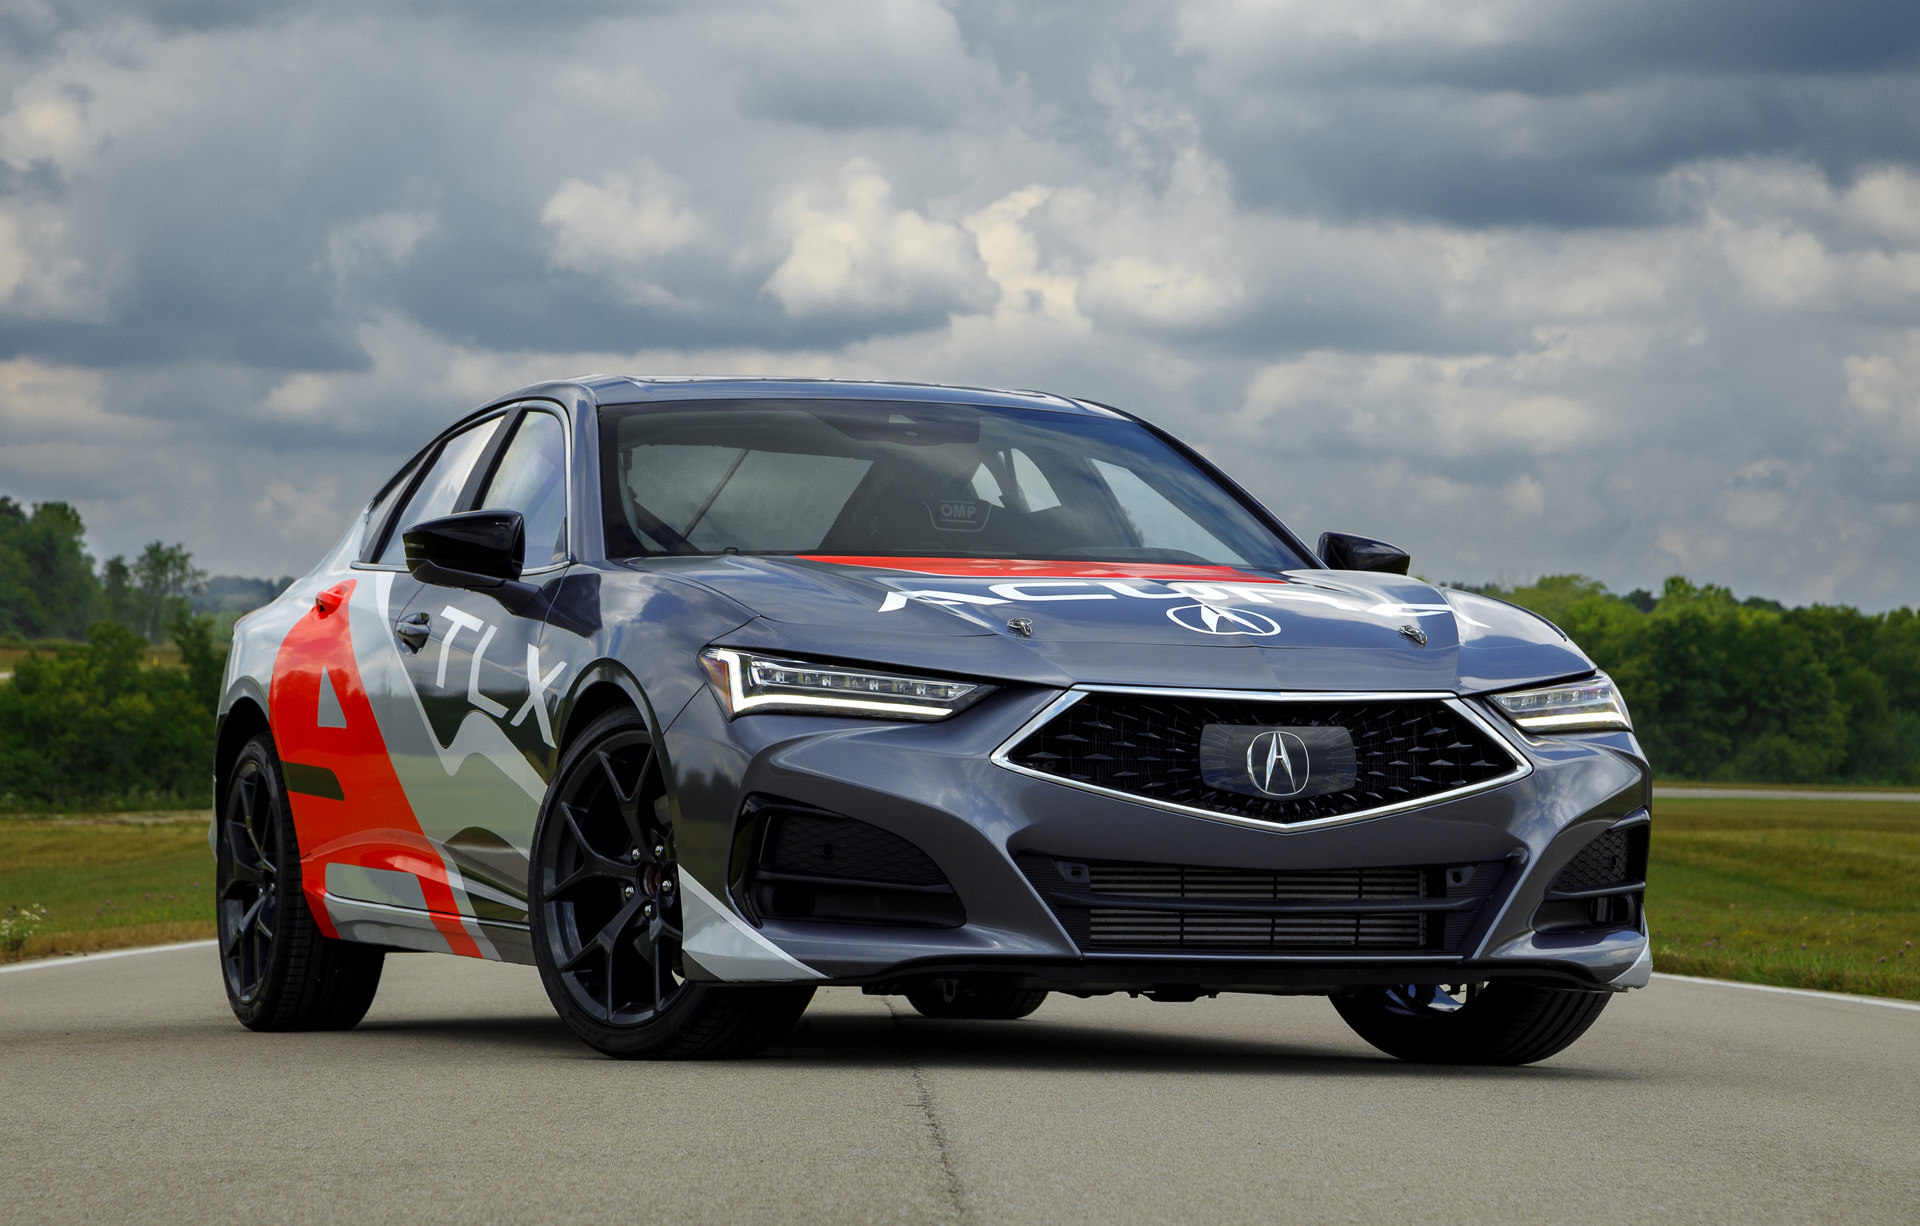 2020 - [Acura] TLX - Page 2 2021-acura-tlx-type-s-prototype-to-tackle-2020-pikes-peak-international-hill-climb_100754378_h